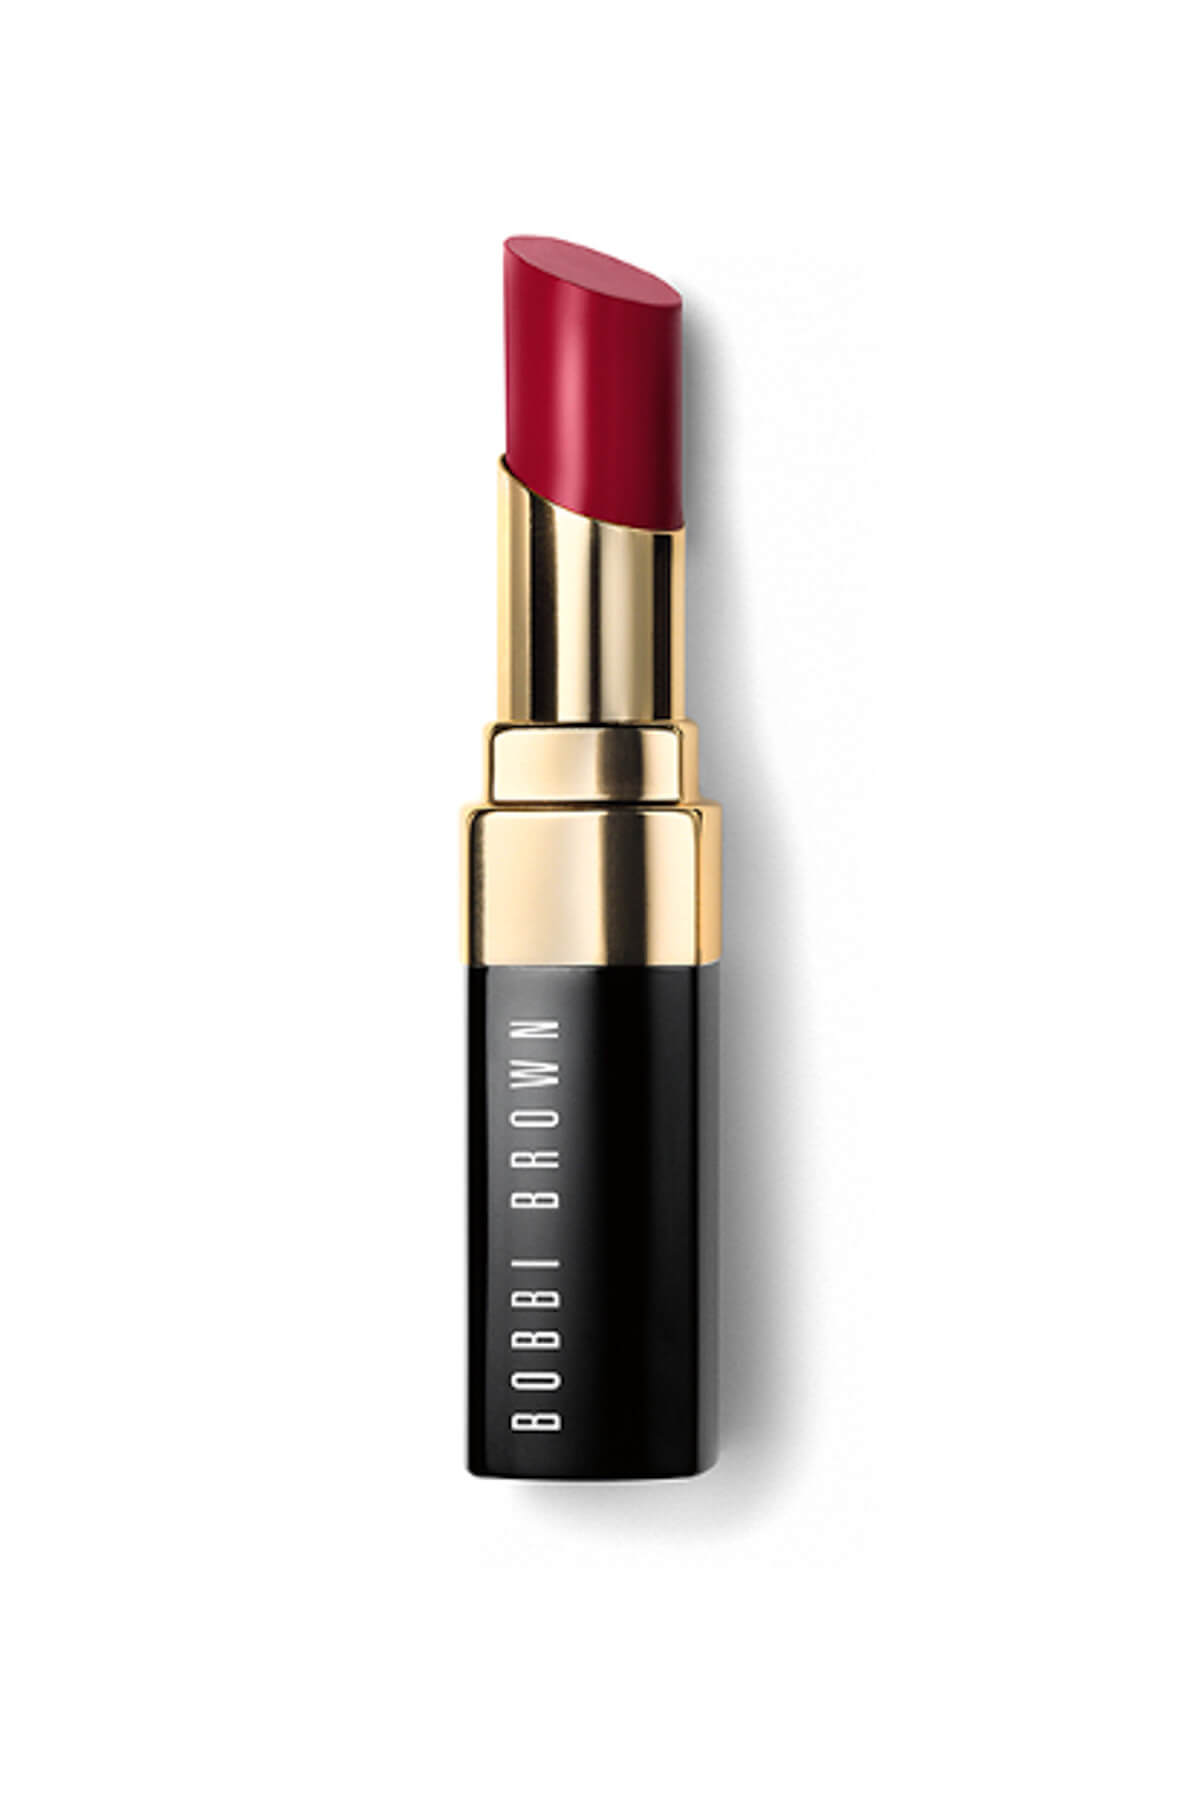 Bobbı Brown Ruj – Nourishing Lip Color Oil Infused Poppy 716170167992 – 102.21 TL